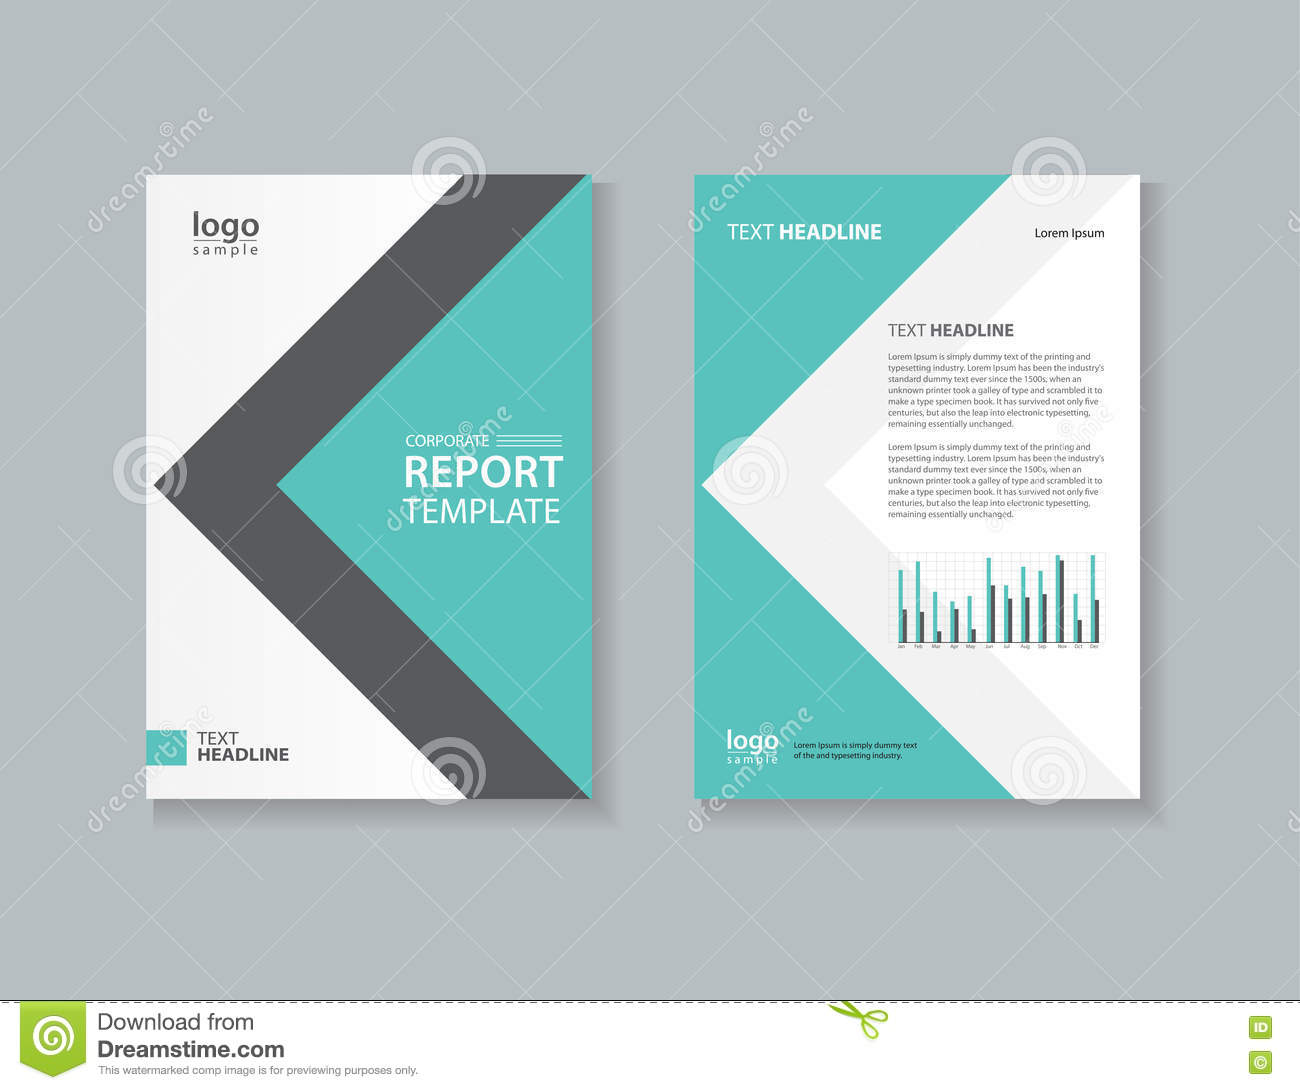 business plan template for web design company professional business plan template for web design company bplans business planning resources and business plan business